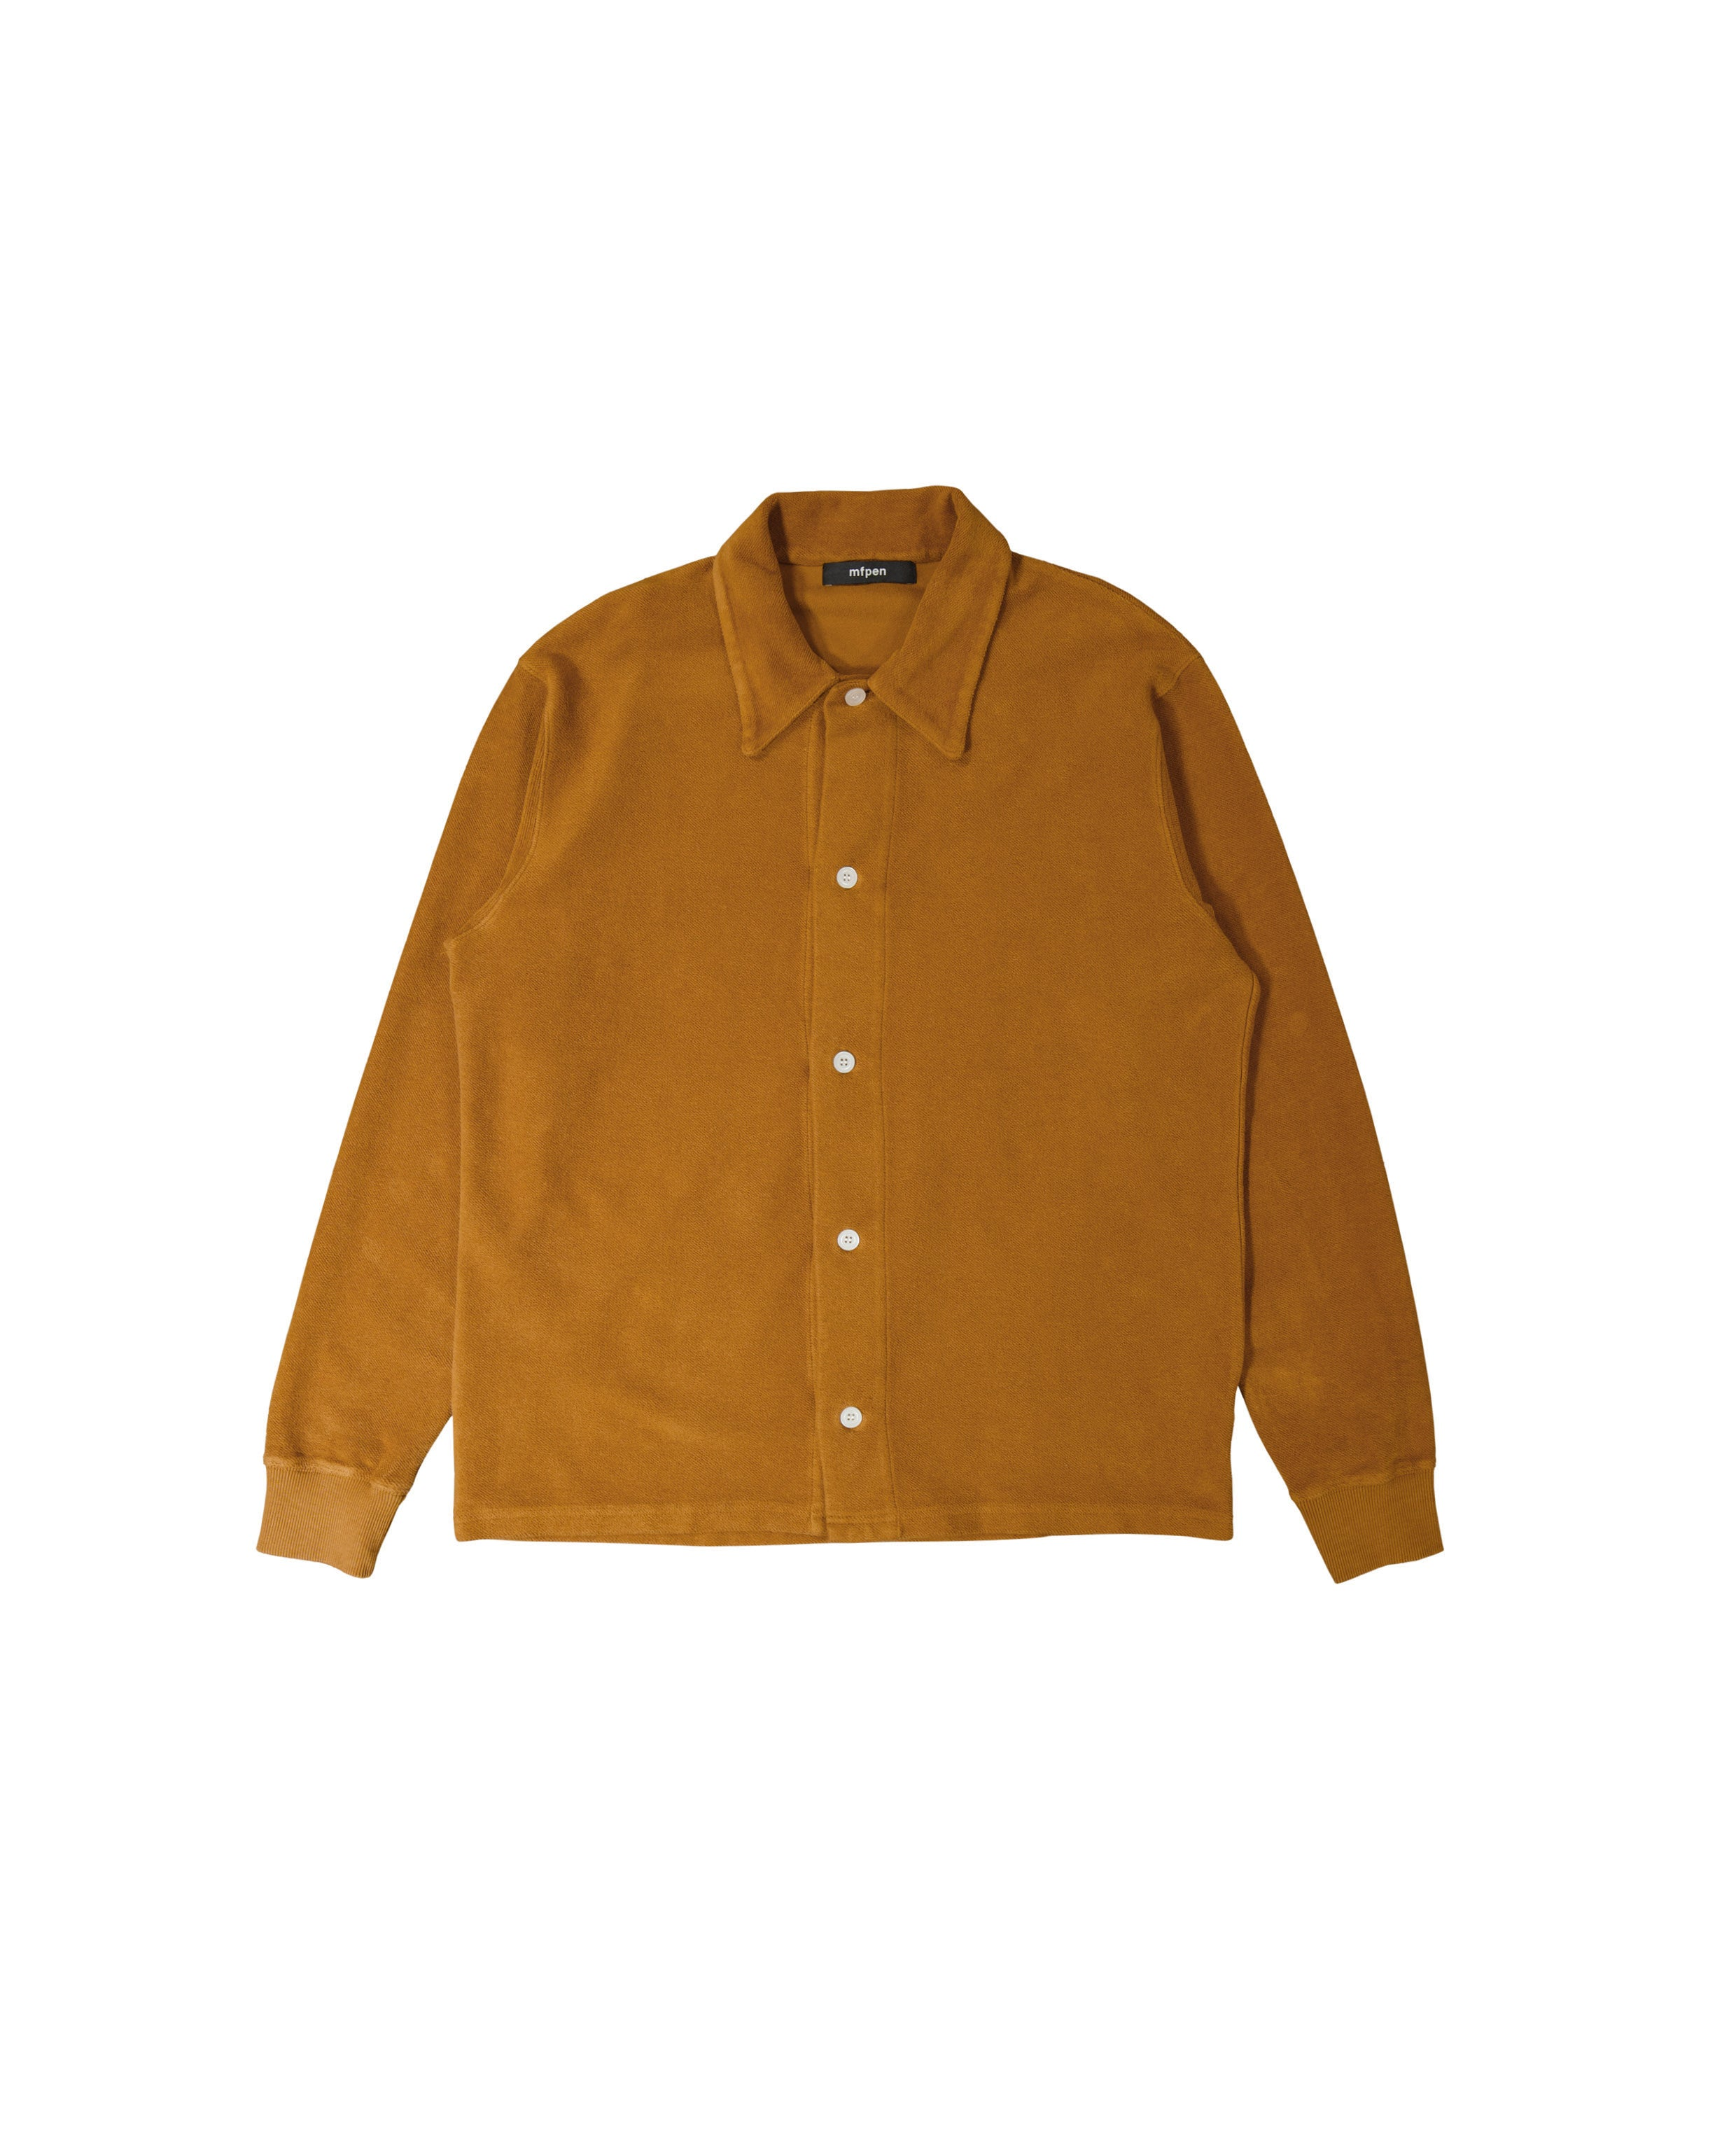 LUCEN SHIRT - BROWN